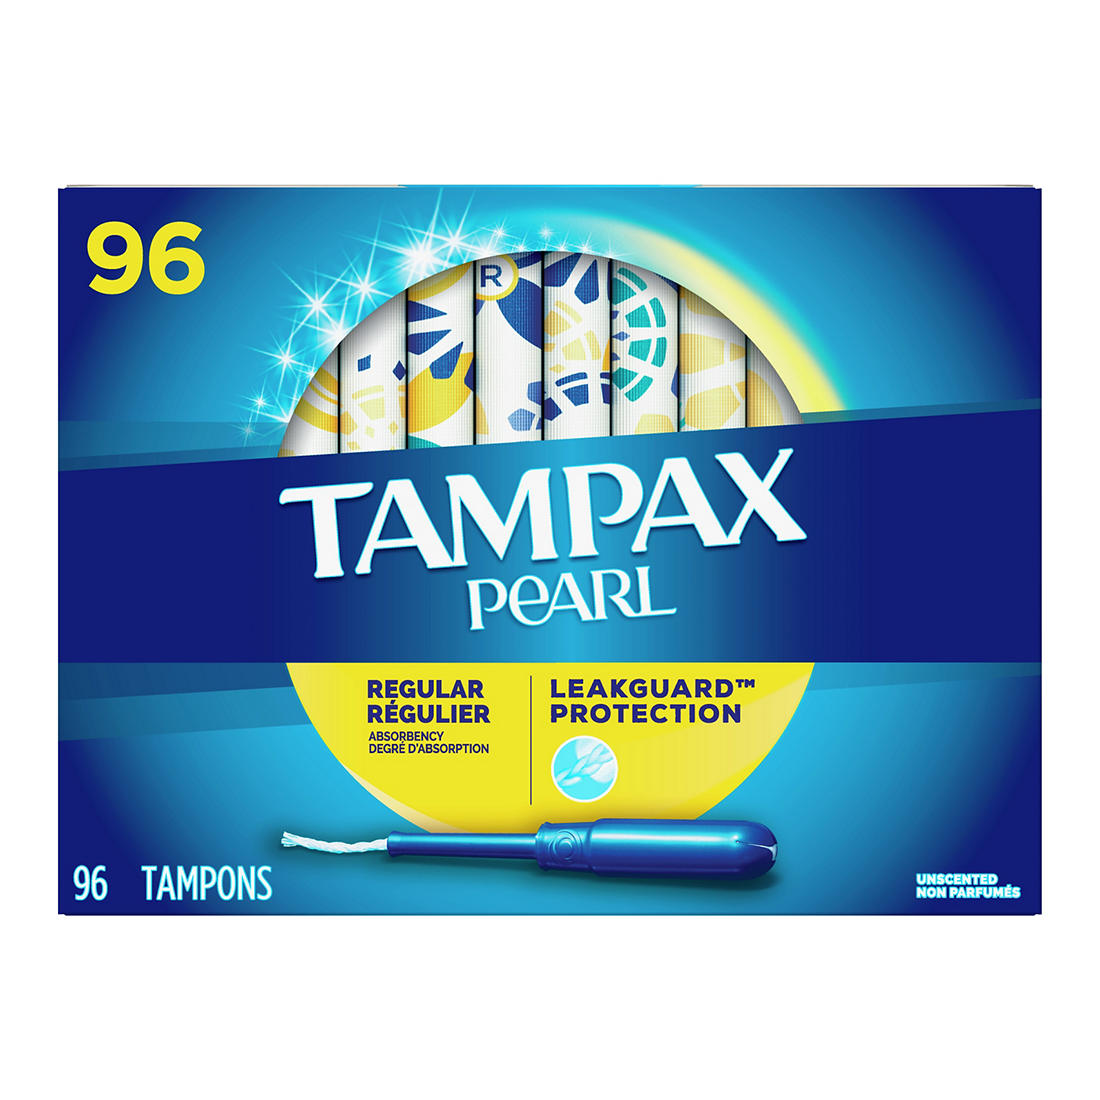 photo regarding Tampax Coupons Printable titled Tampax Pearl Month to month Unscented Tampons, 96 ct.